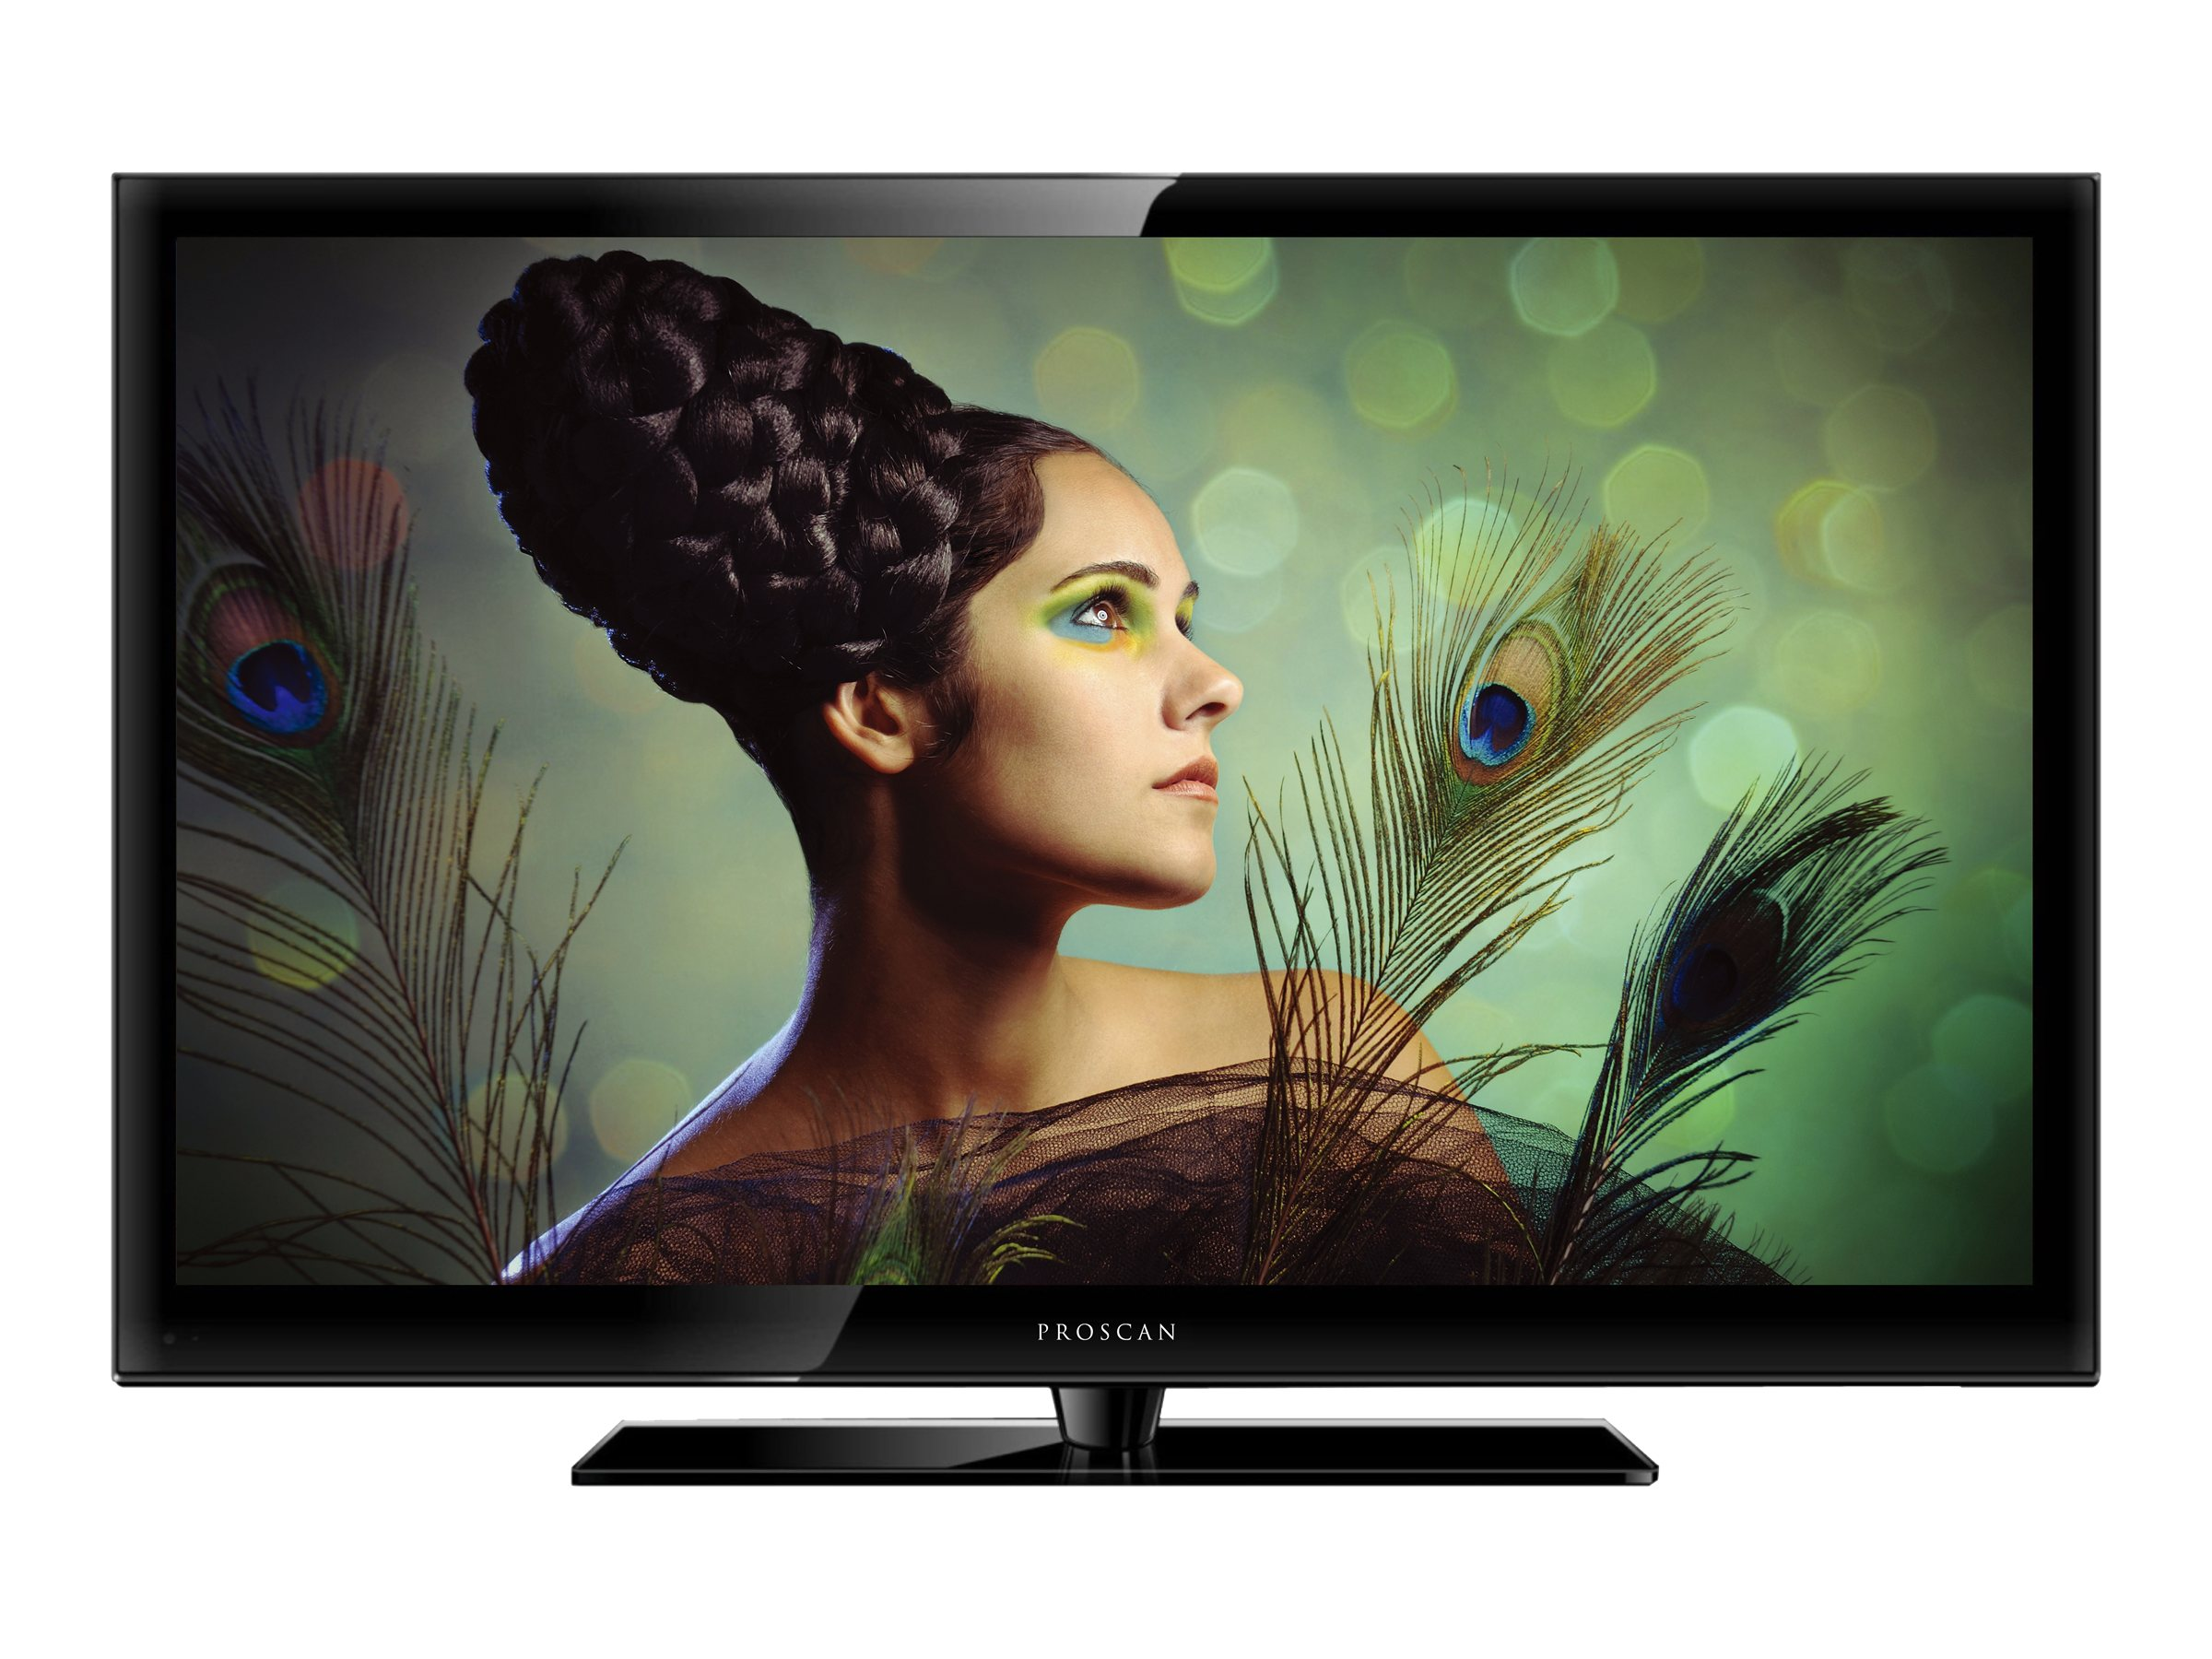 Proscan 32 PLDV321300 LED-LCD TV, Black with DVD Player